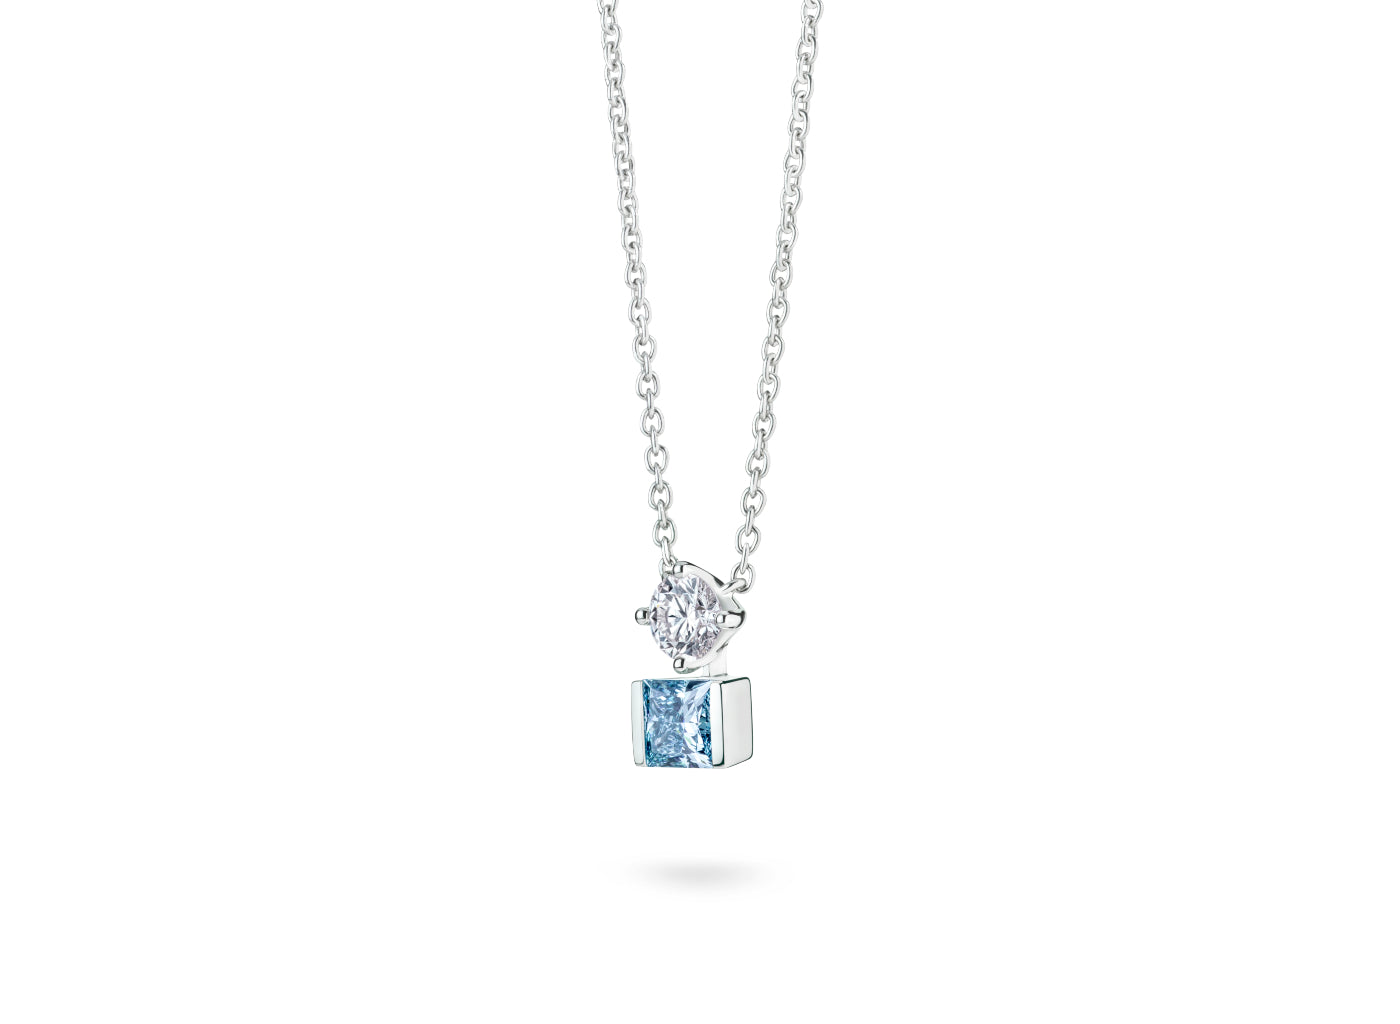 Side view of Mismatched Two Stone 1 carat pendant with blue and white diamonds